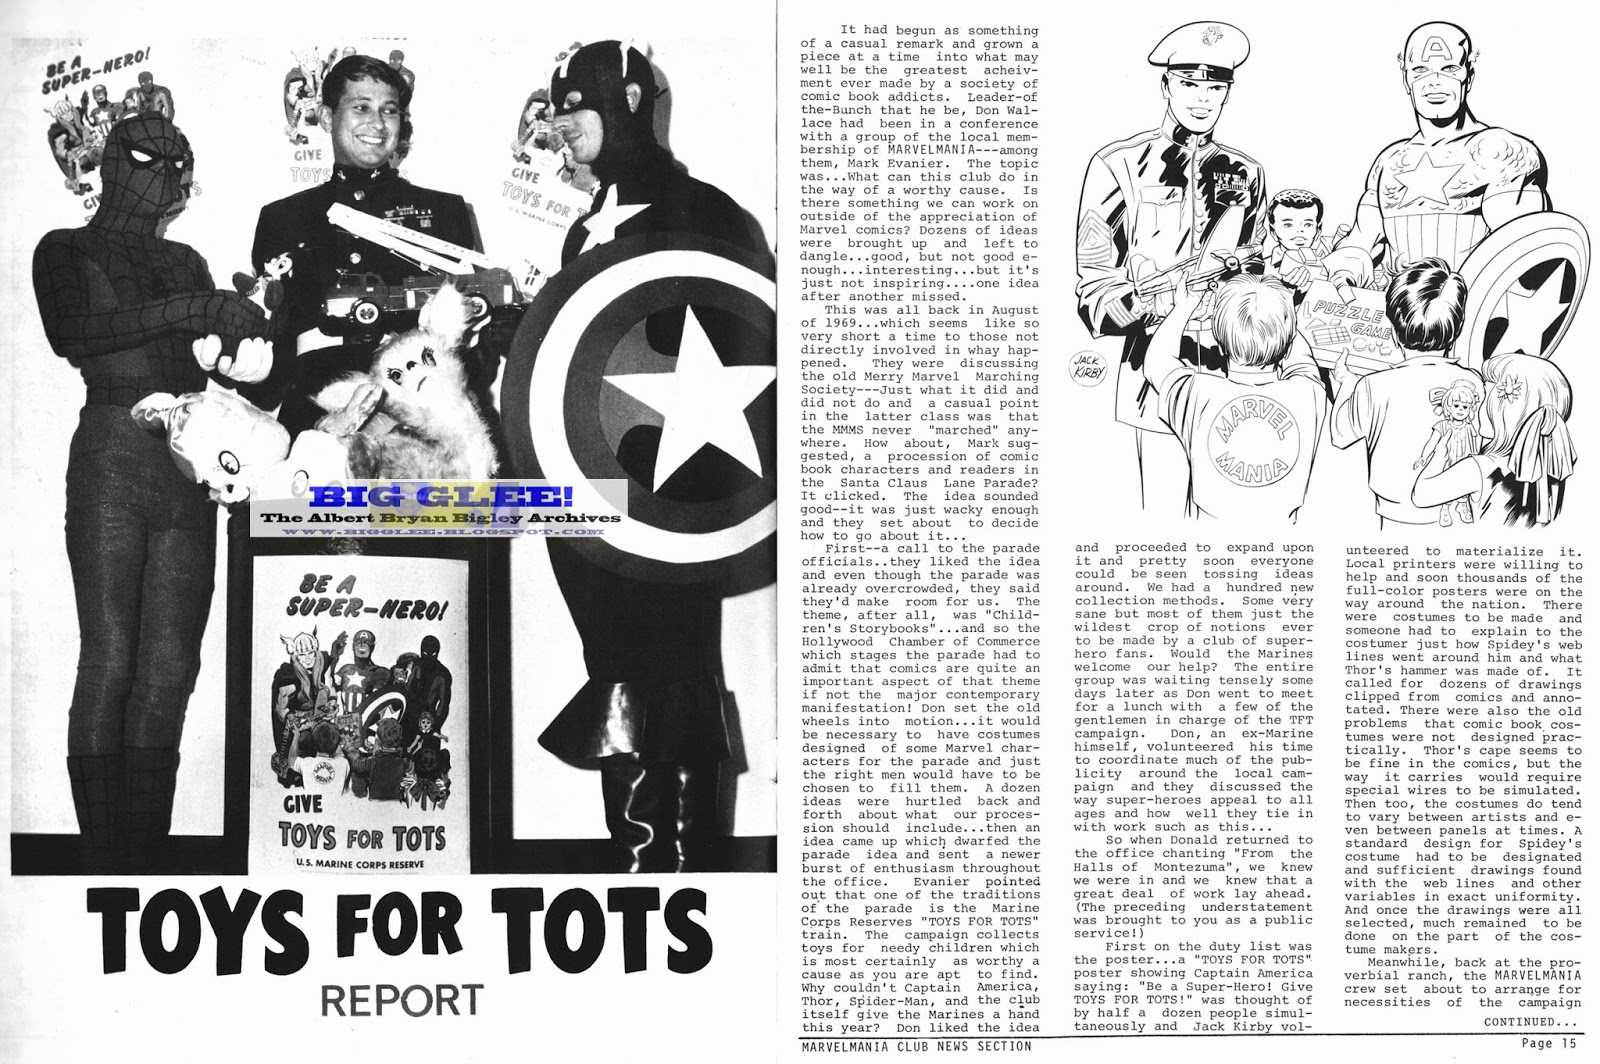 Black And White Toys For Tots : Big glee the albert bryan bigley archives